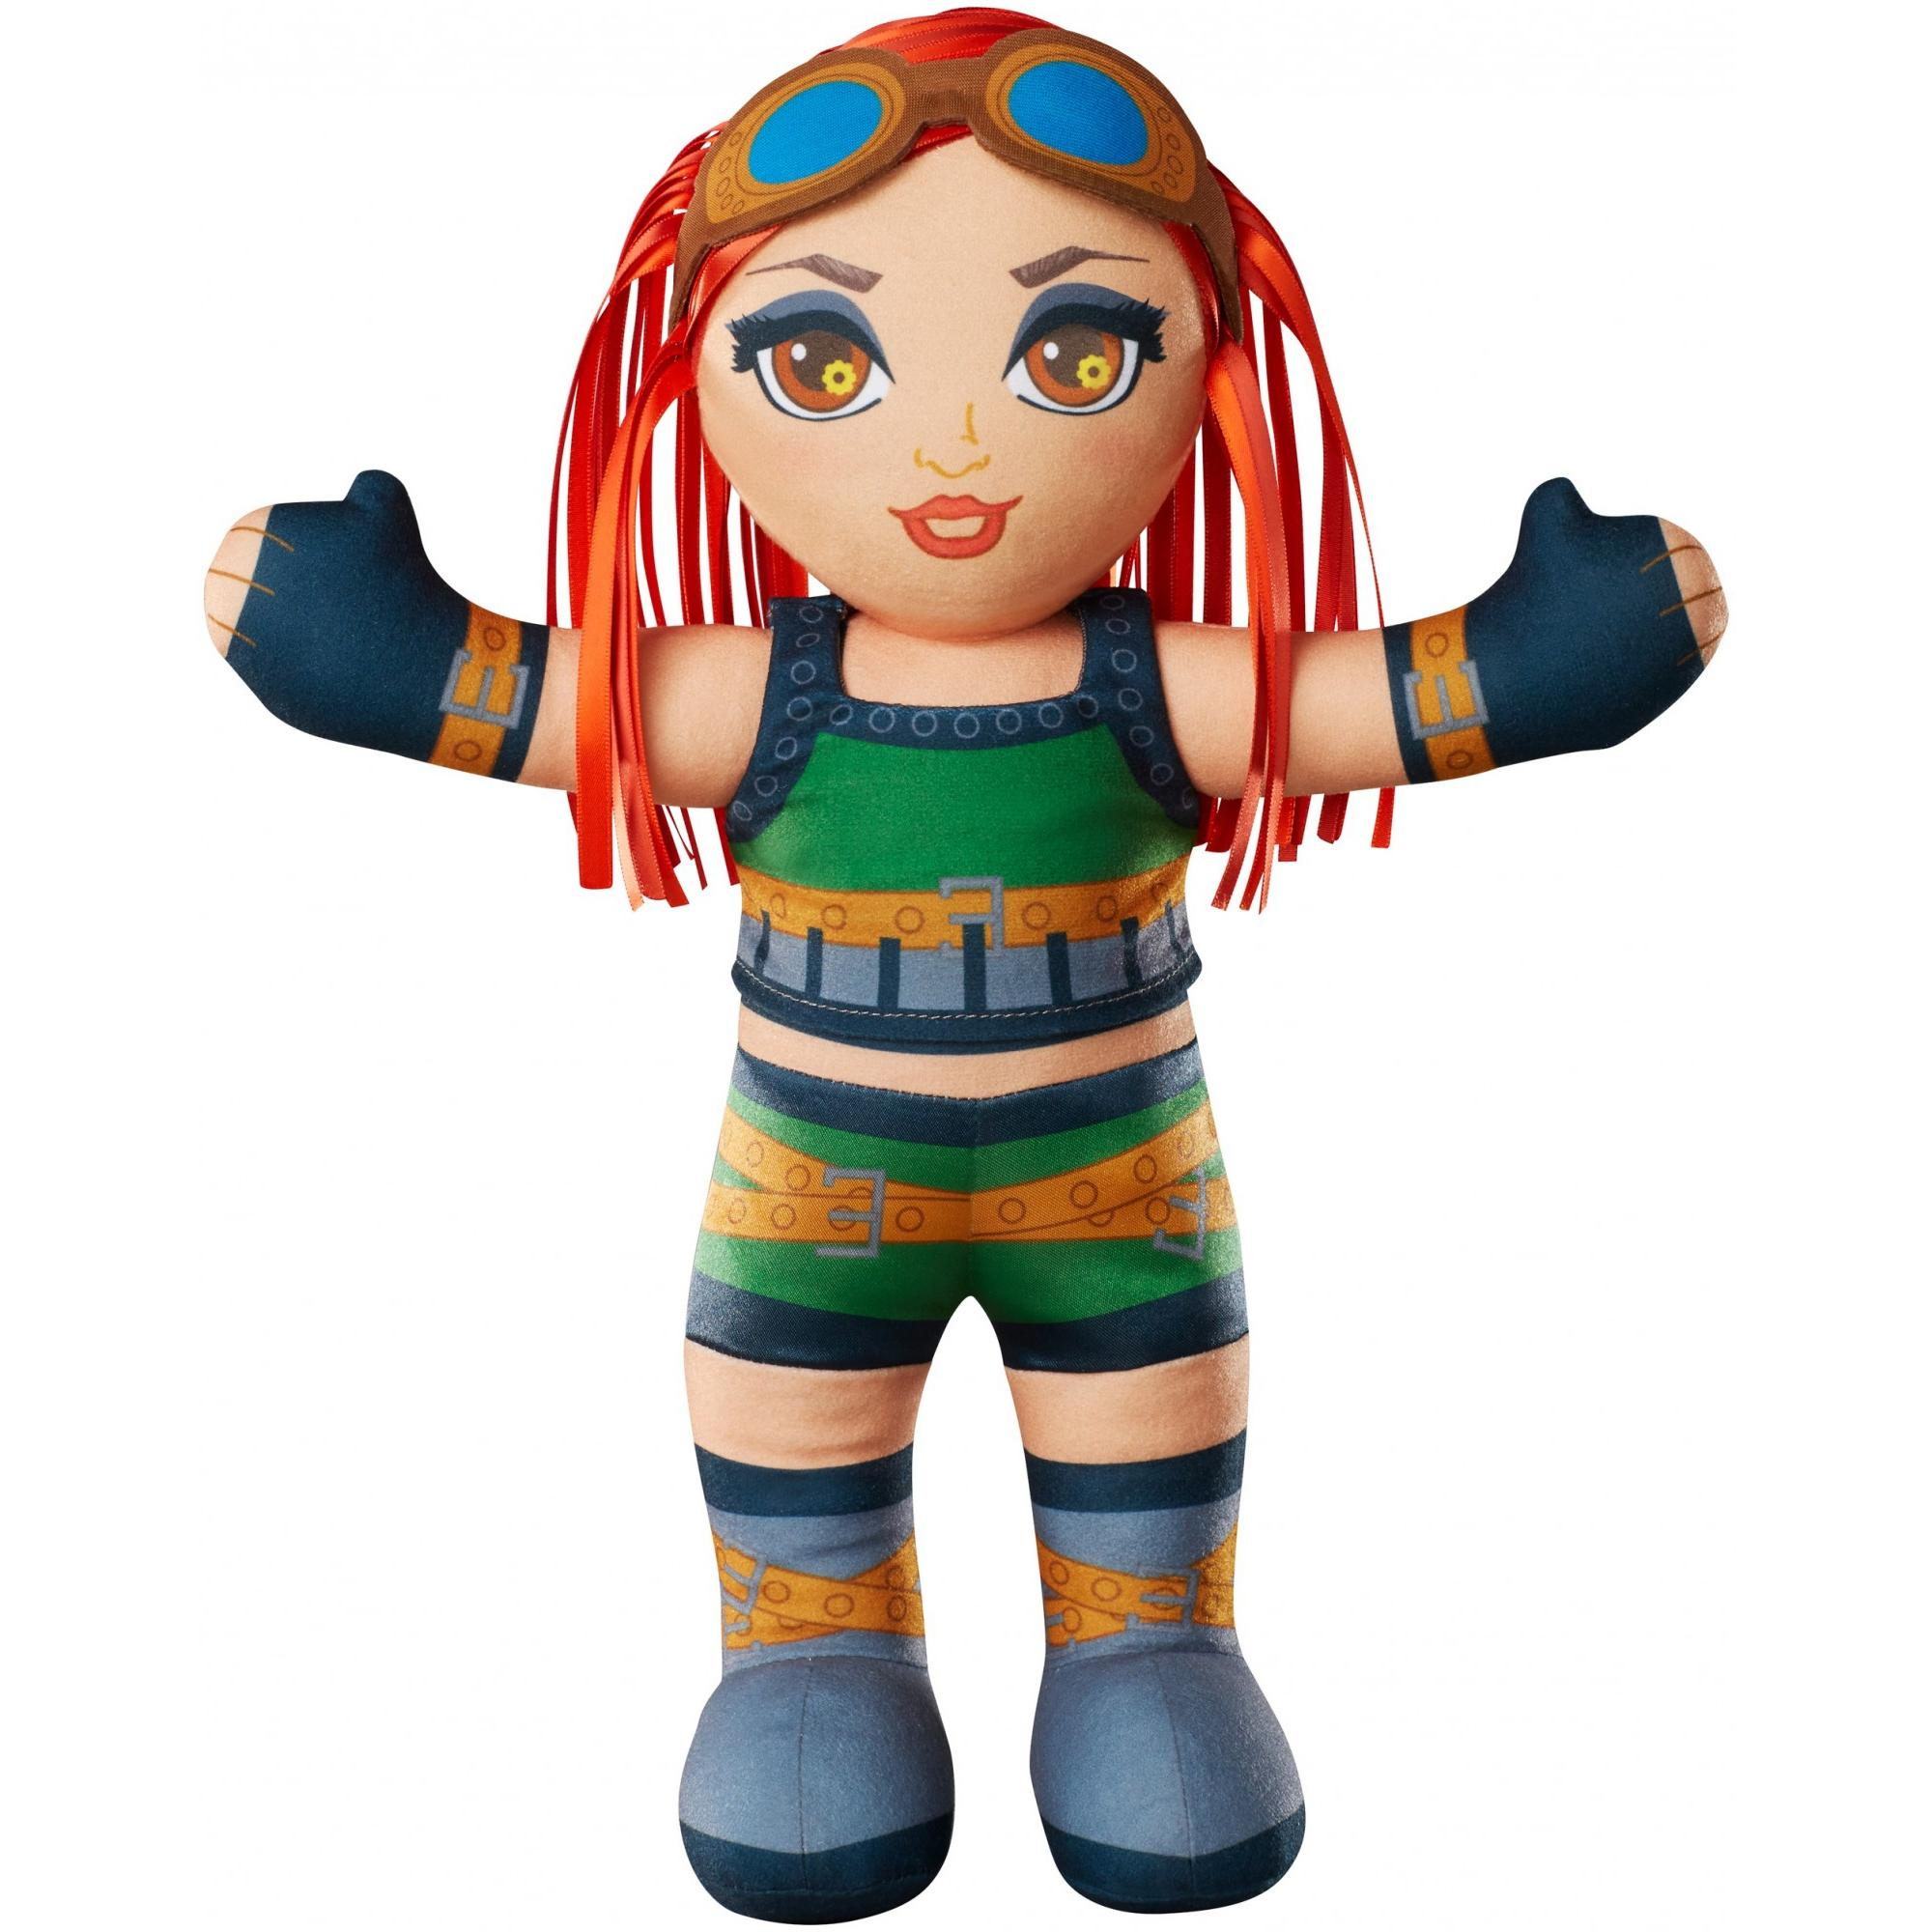 WWE Tag Team Superstars Becky Lynch Doll